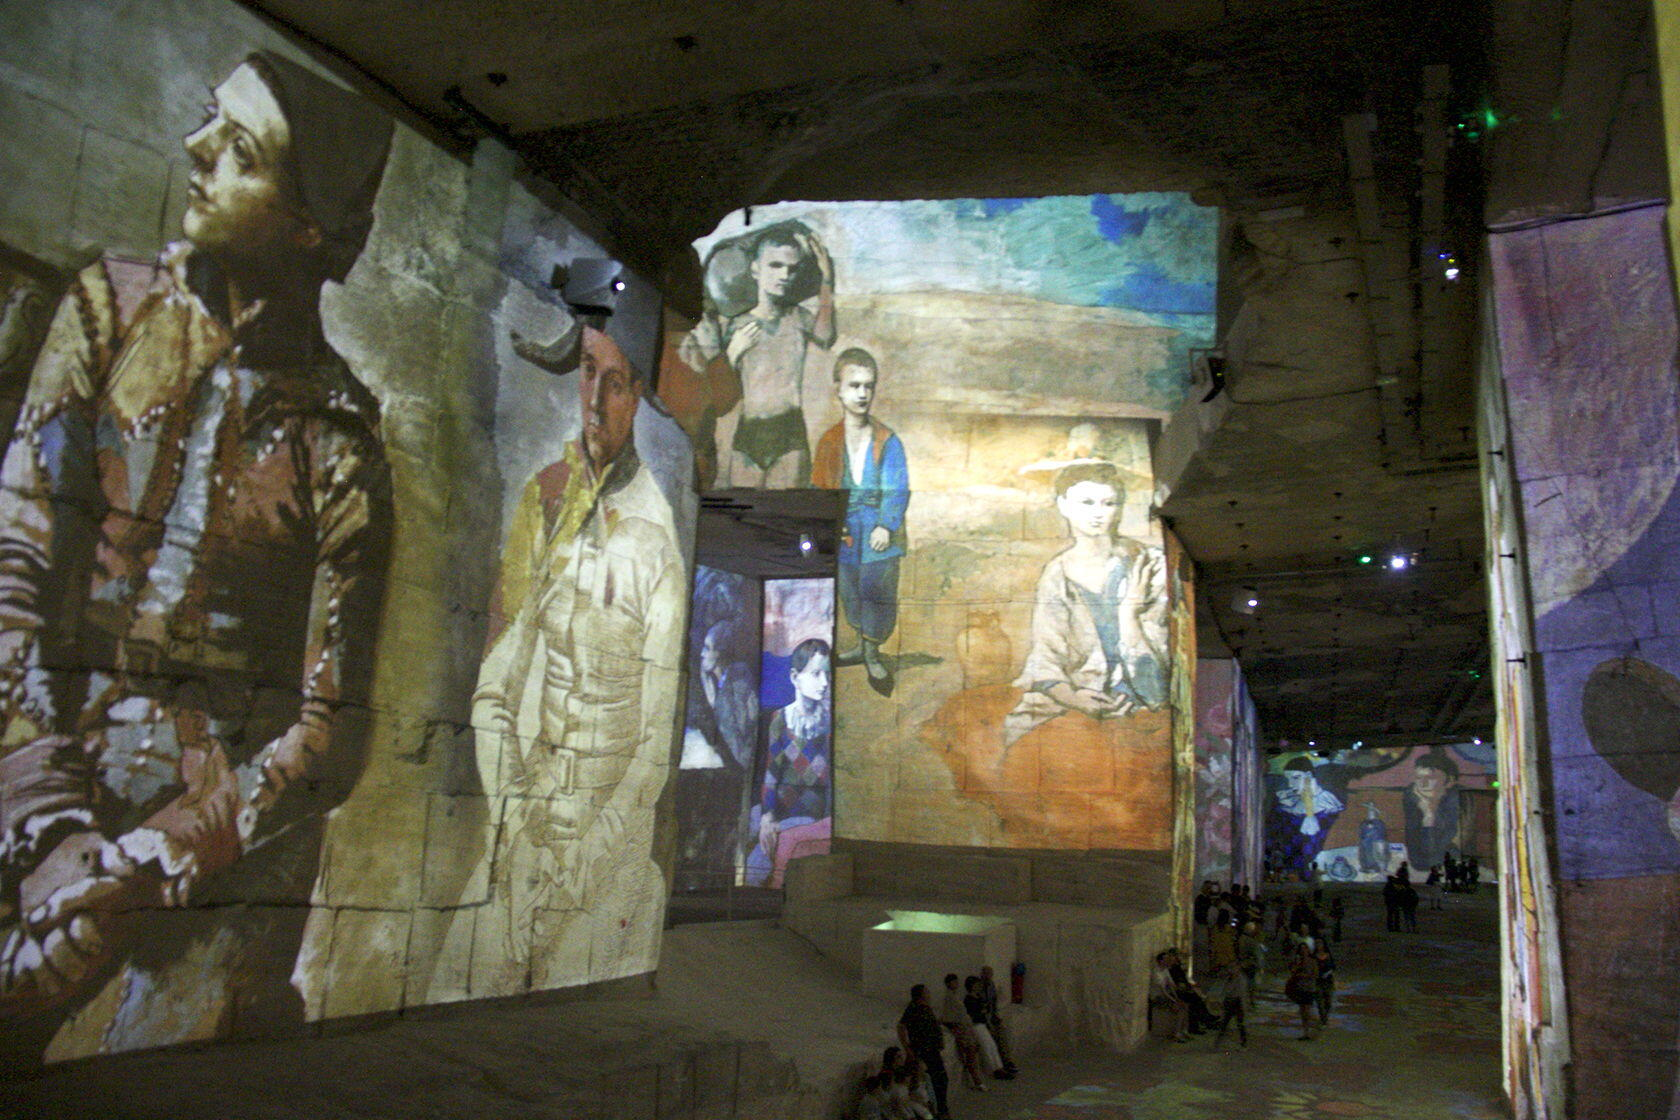 Carrieres de Lumieres Les Baux 2018